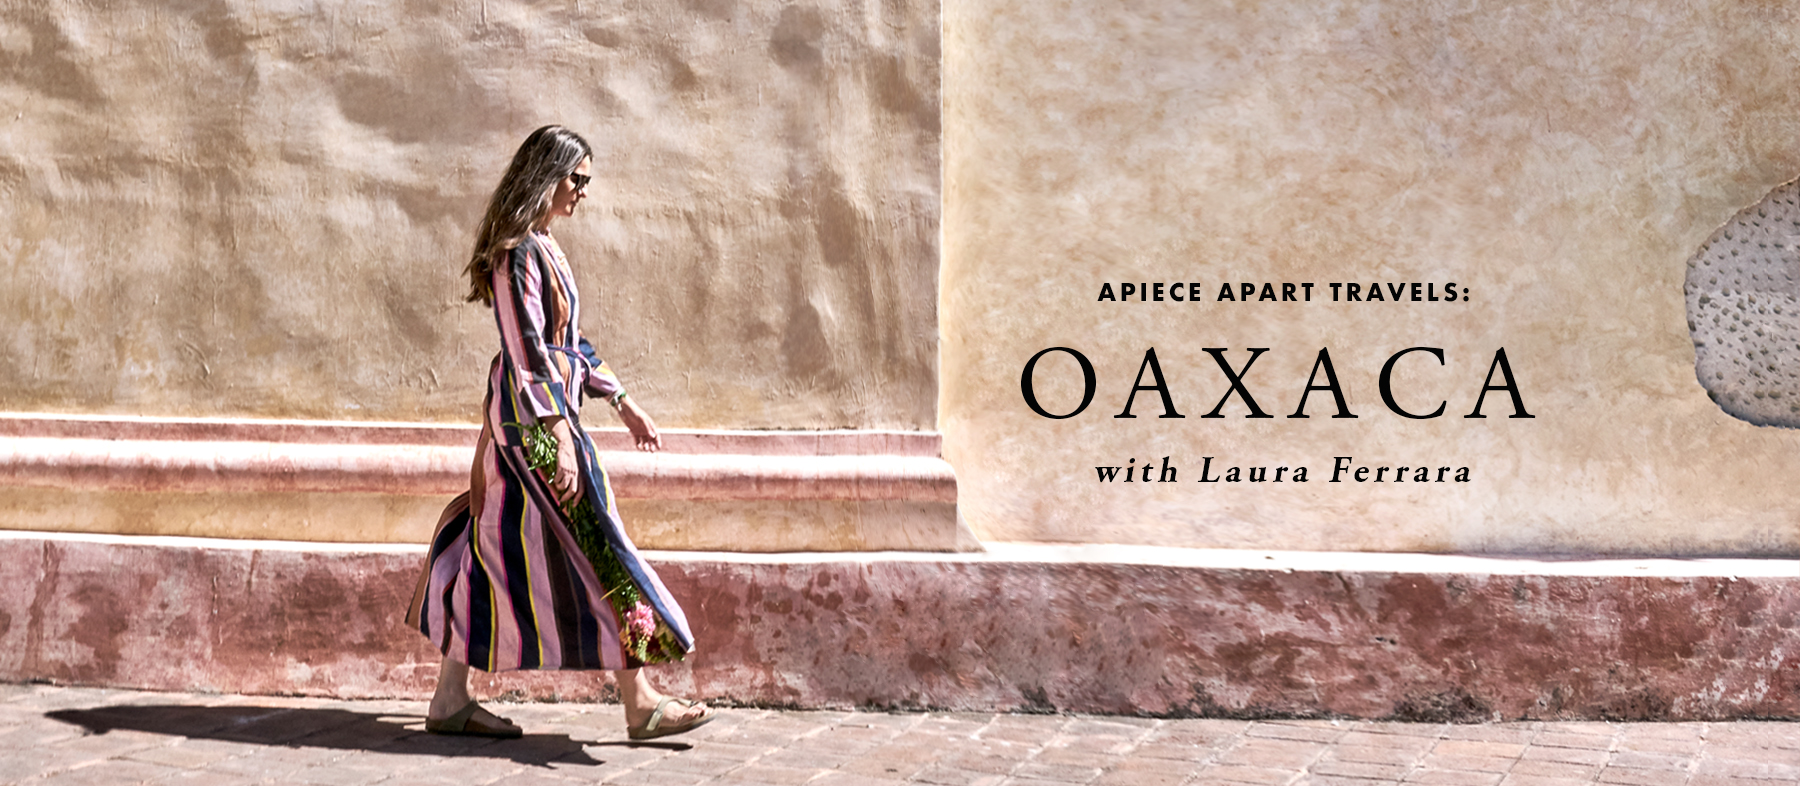 Apiece Apart Travels Oaxaca Laura Ferrara